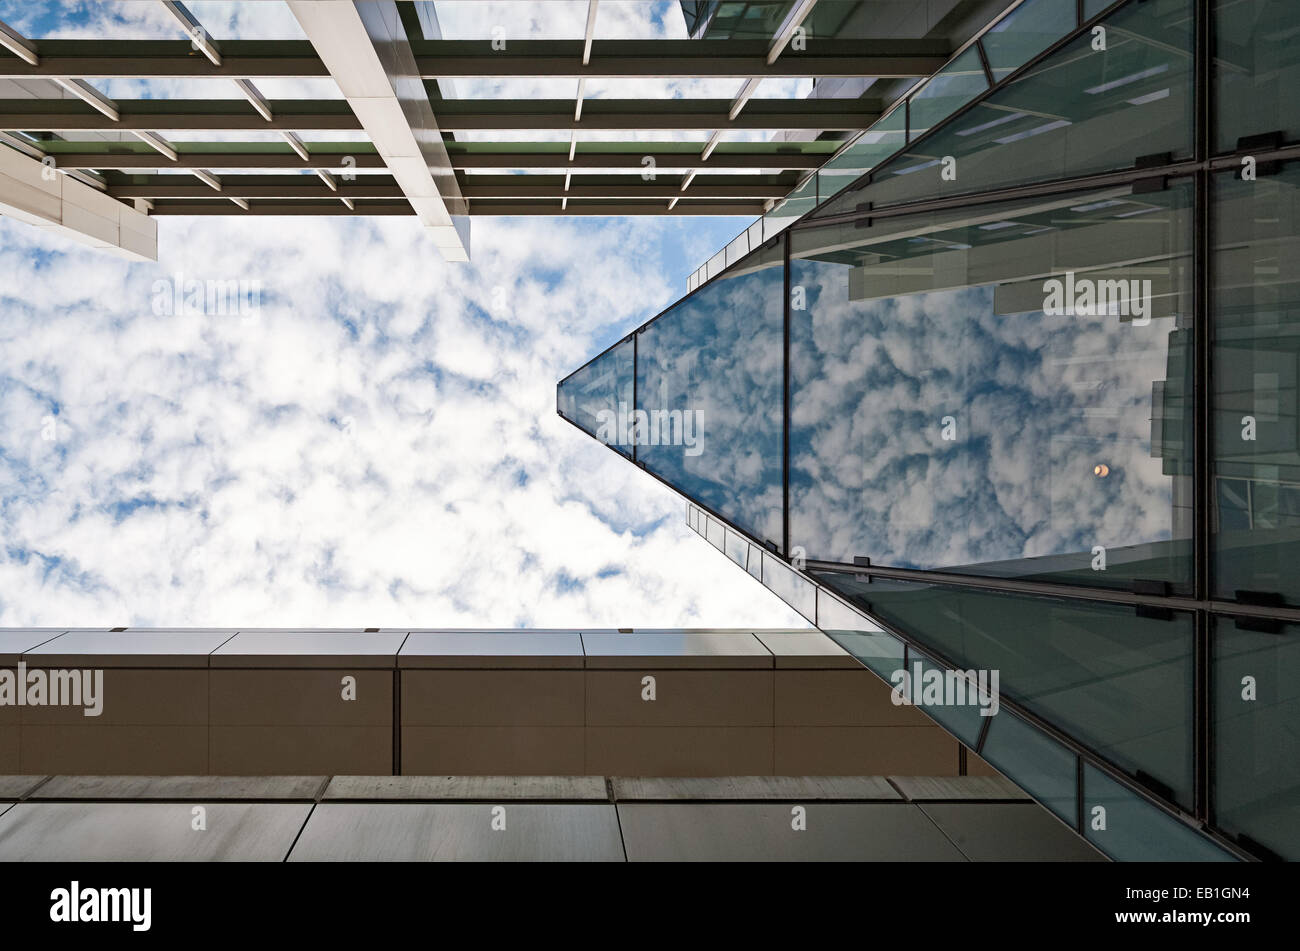 Architectural detail at Boston Airport. - Stock Image